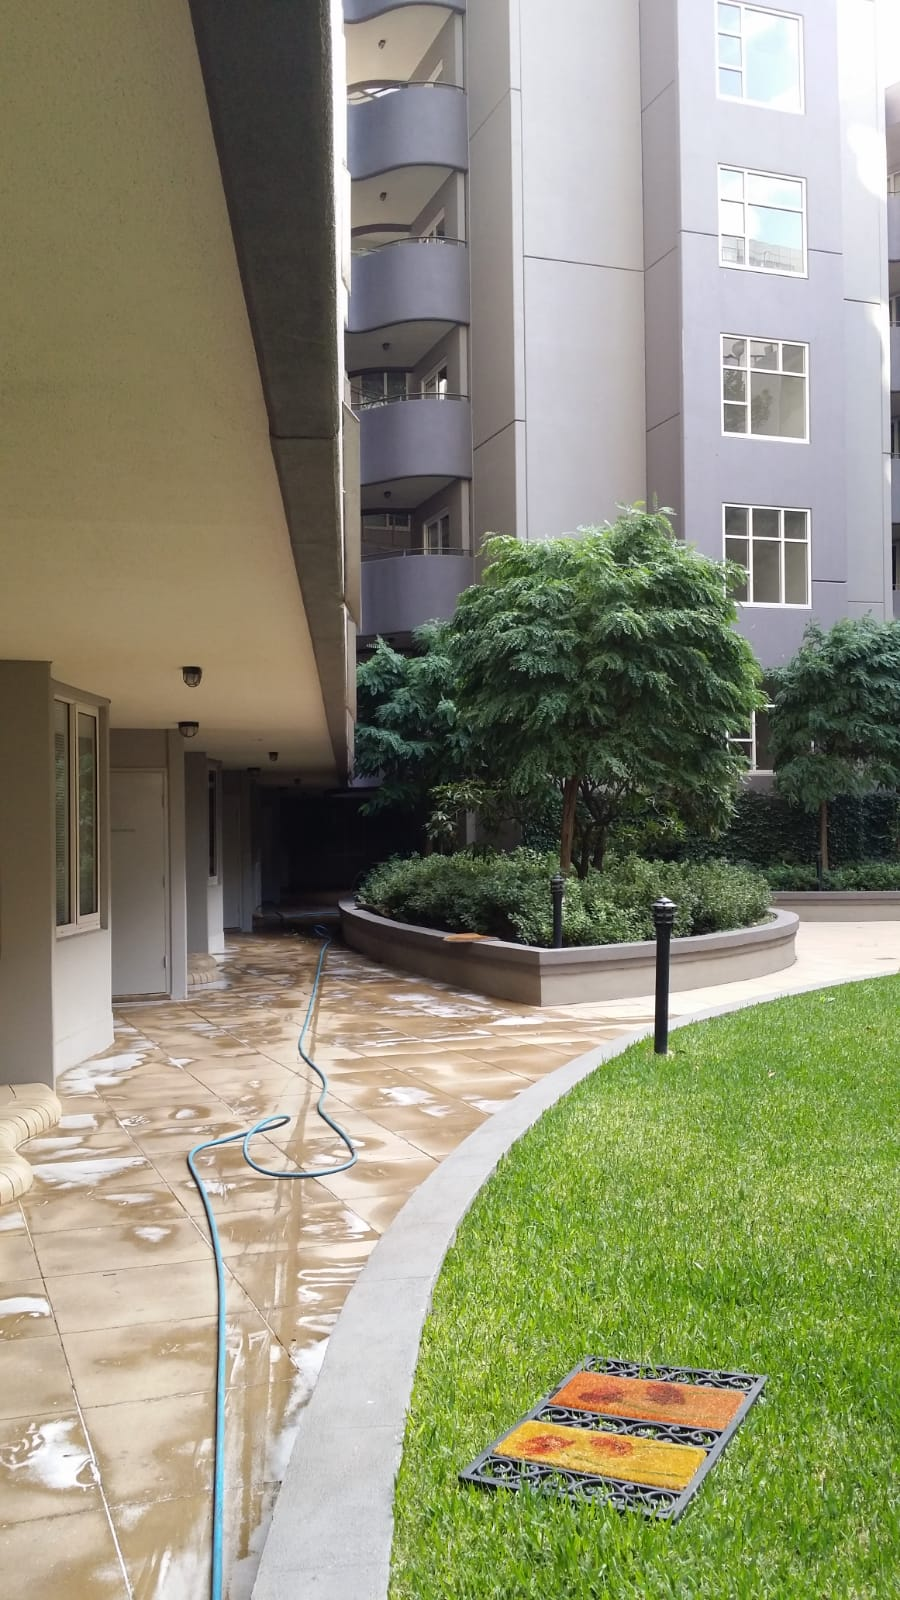 Brookside apartments pressure wash cleaning Queens rd